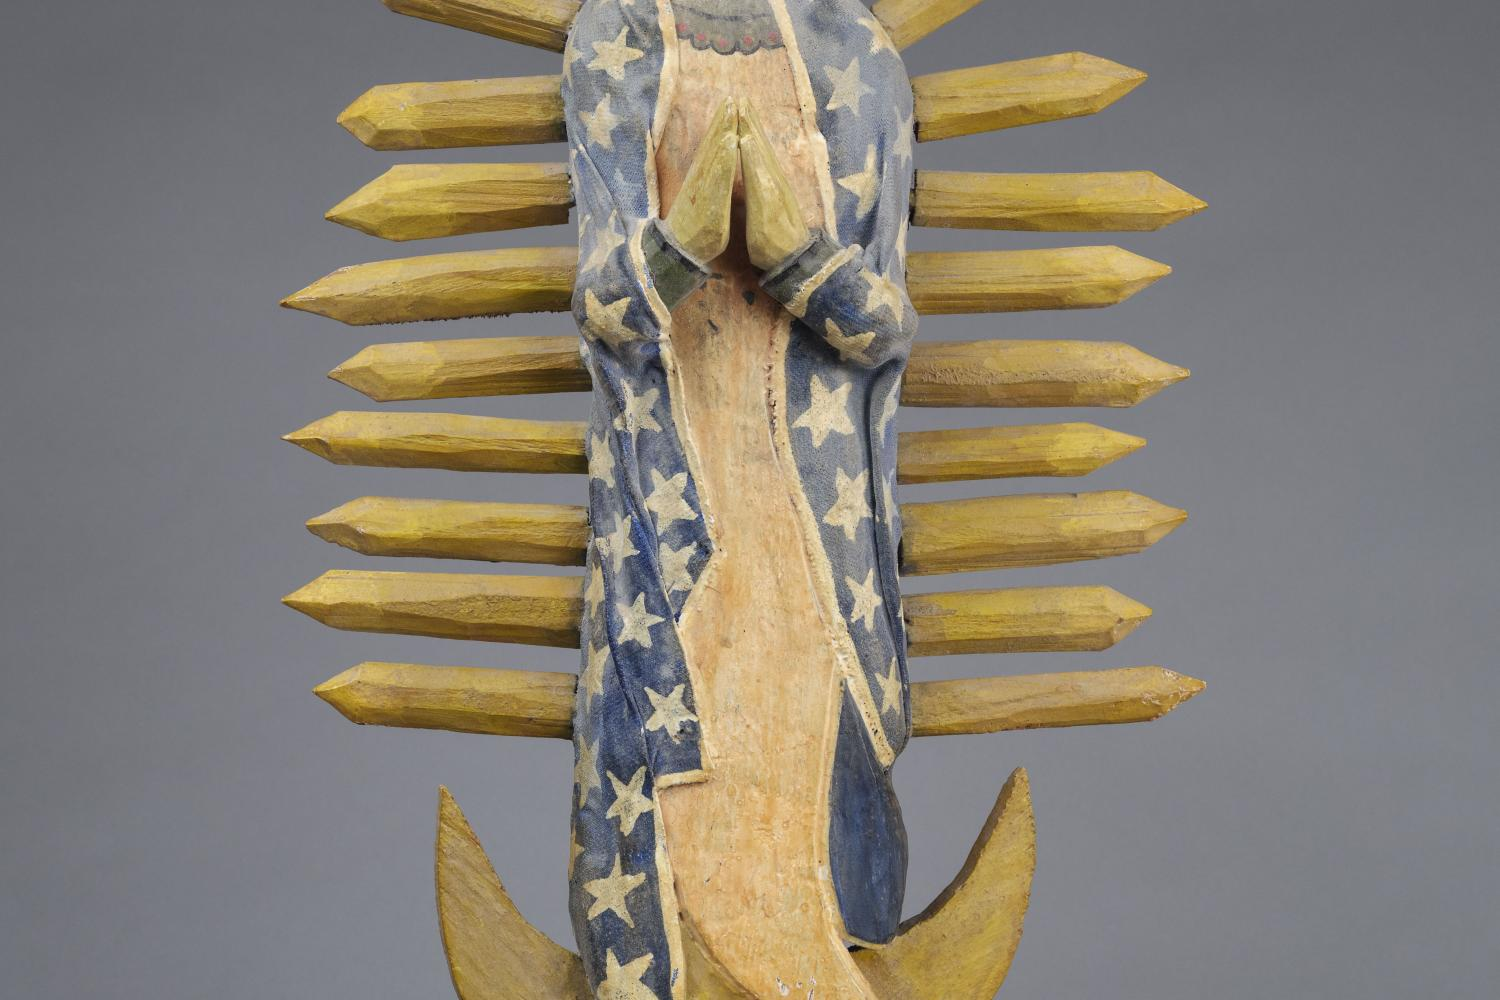 Painted wooden figure of our lady of Guadalupe